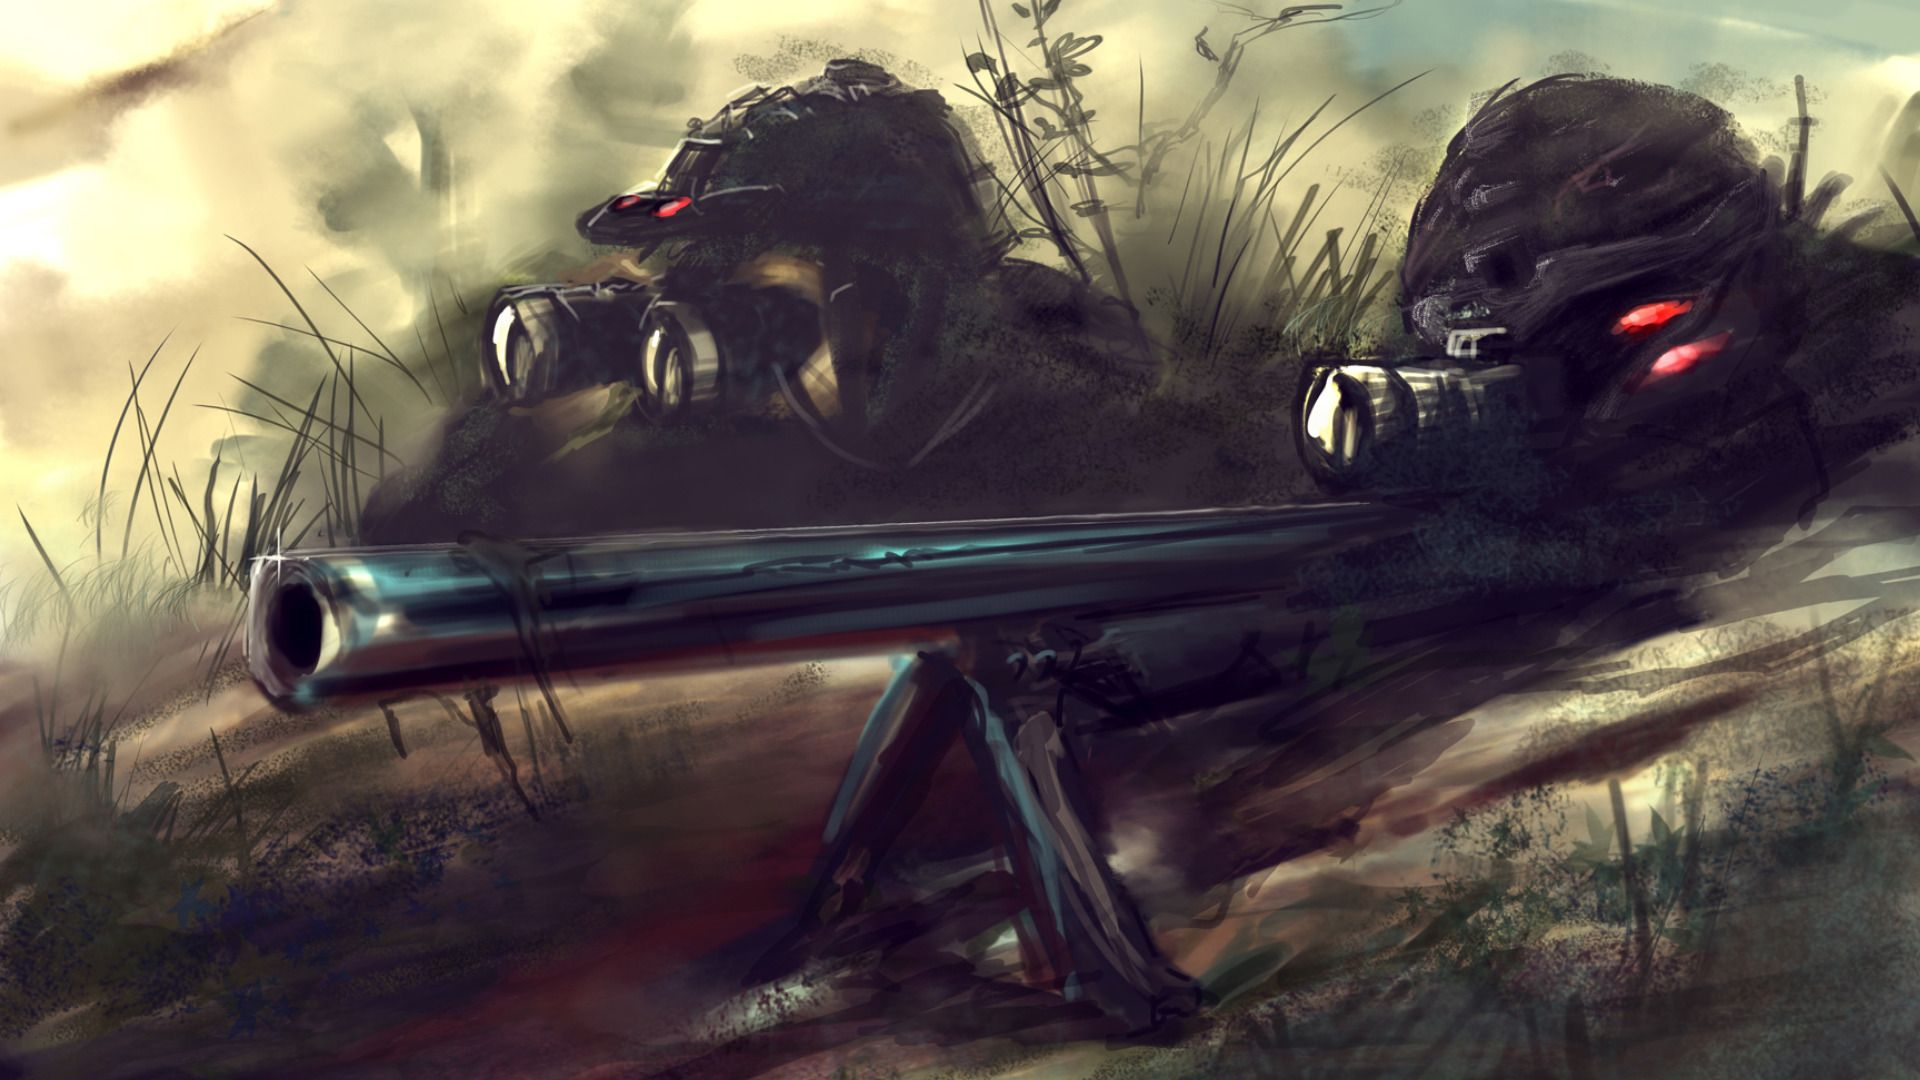 Sniper Wallpaper Google Search Sniper Art Jungle Pictures Sniper